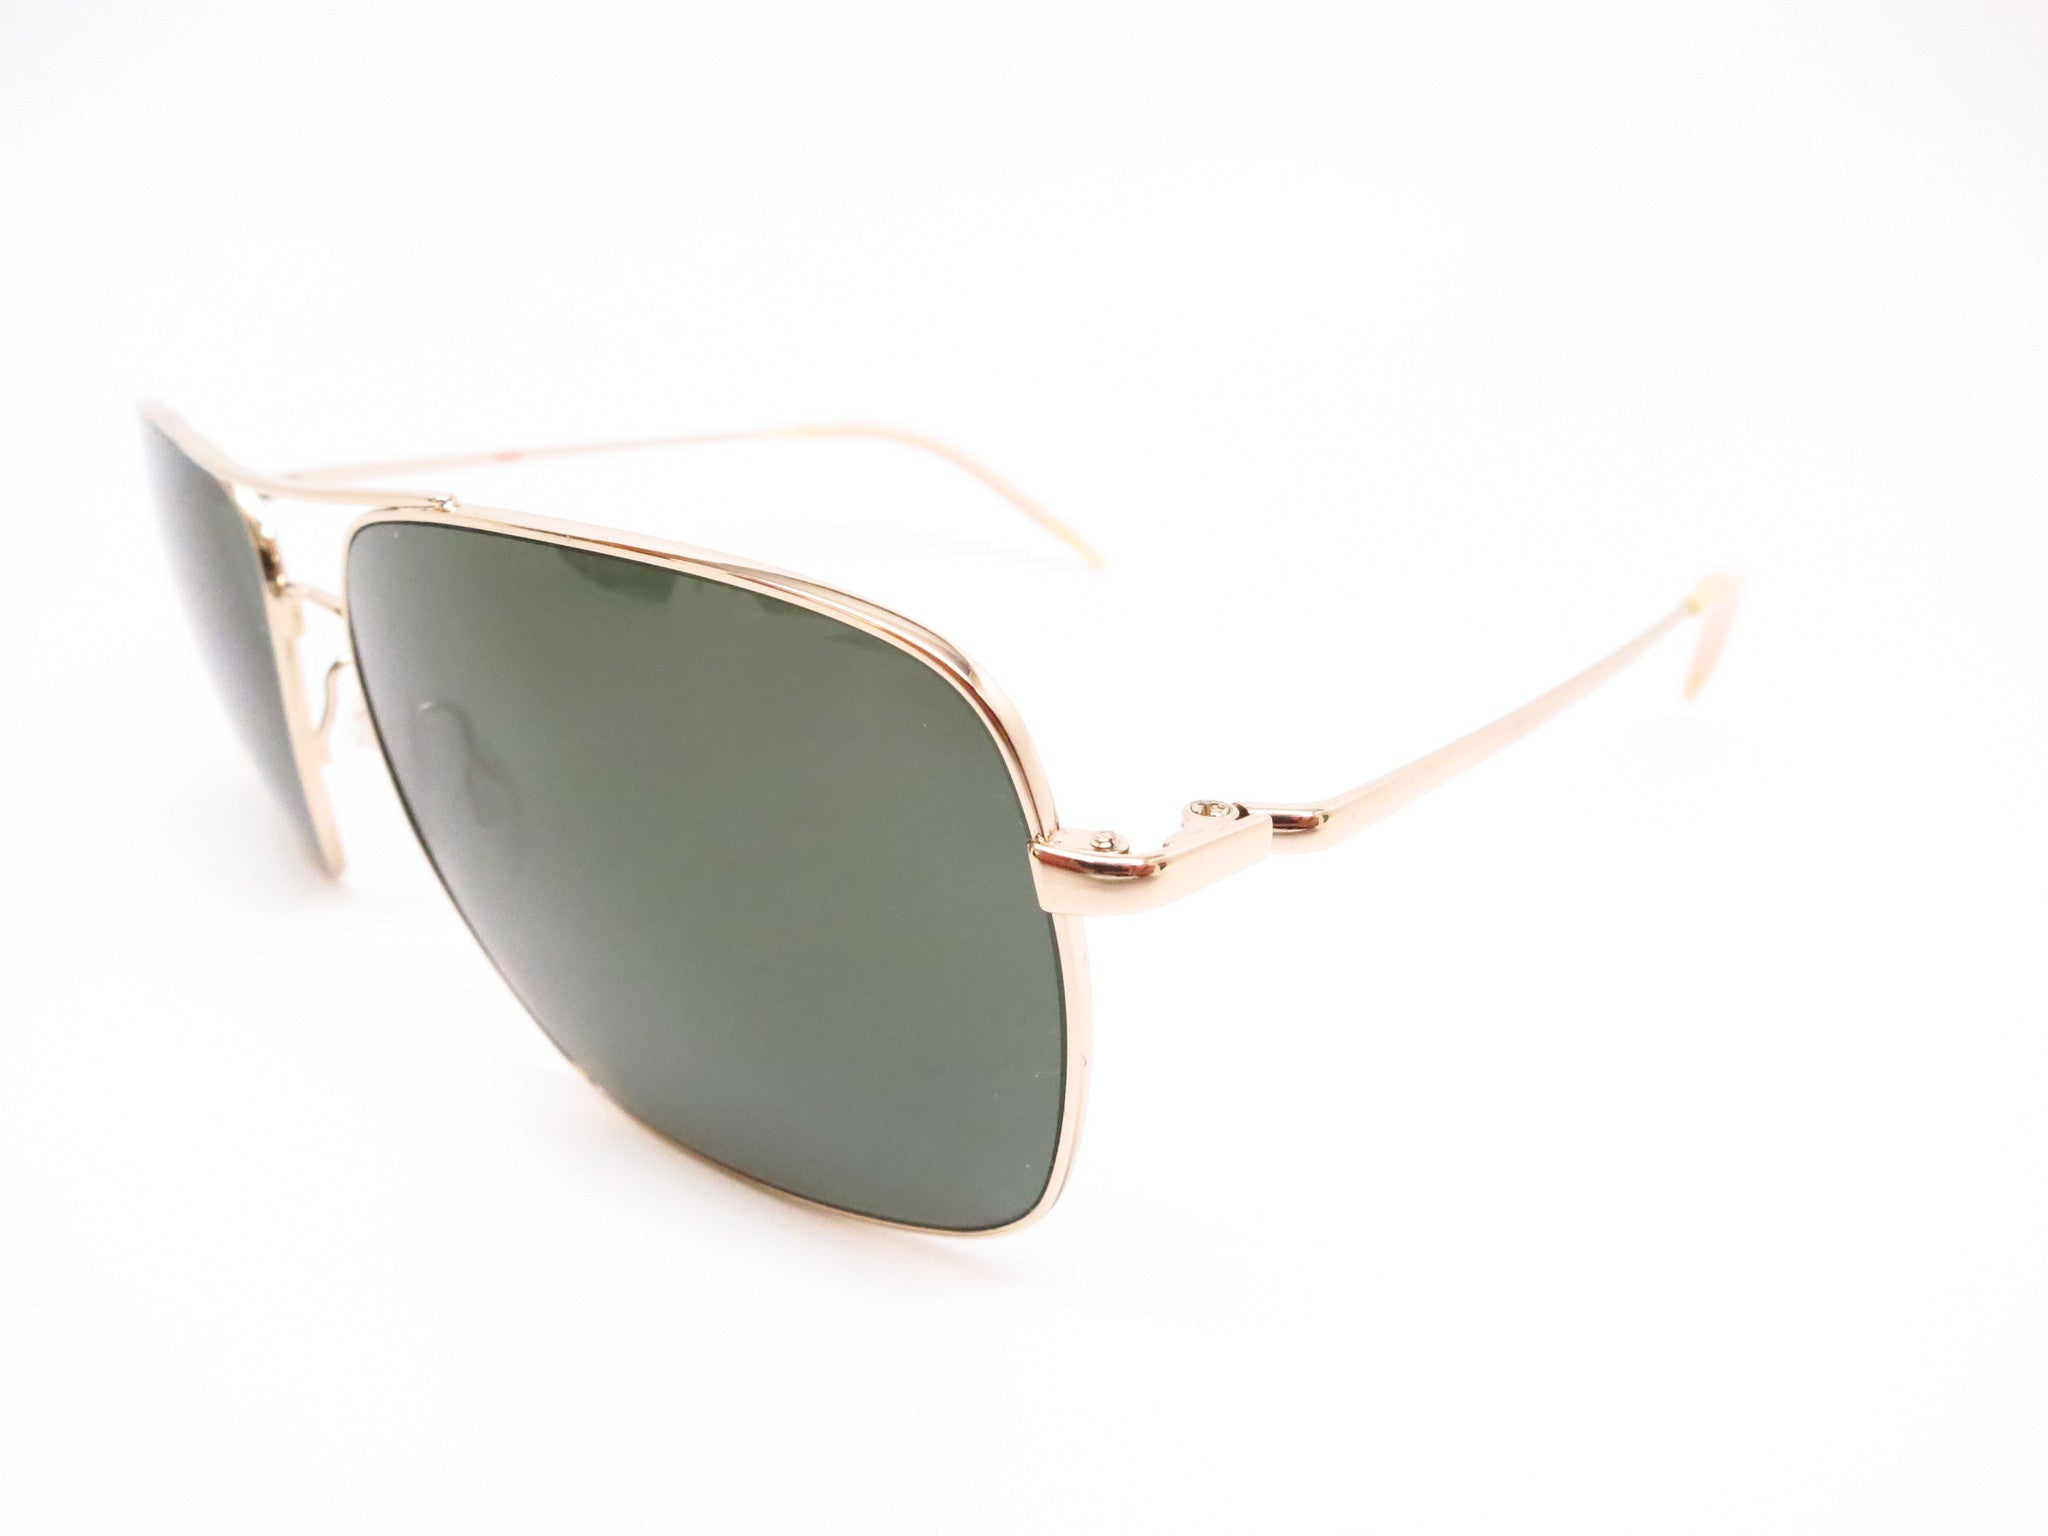 7c029d3534b Oliver Peoples Clifton OV 1150S 5035 P1 Gold Polarized Sunglasses - Eye  Heart Shades ...